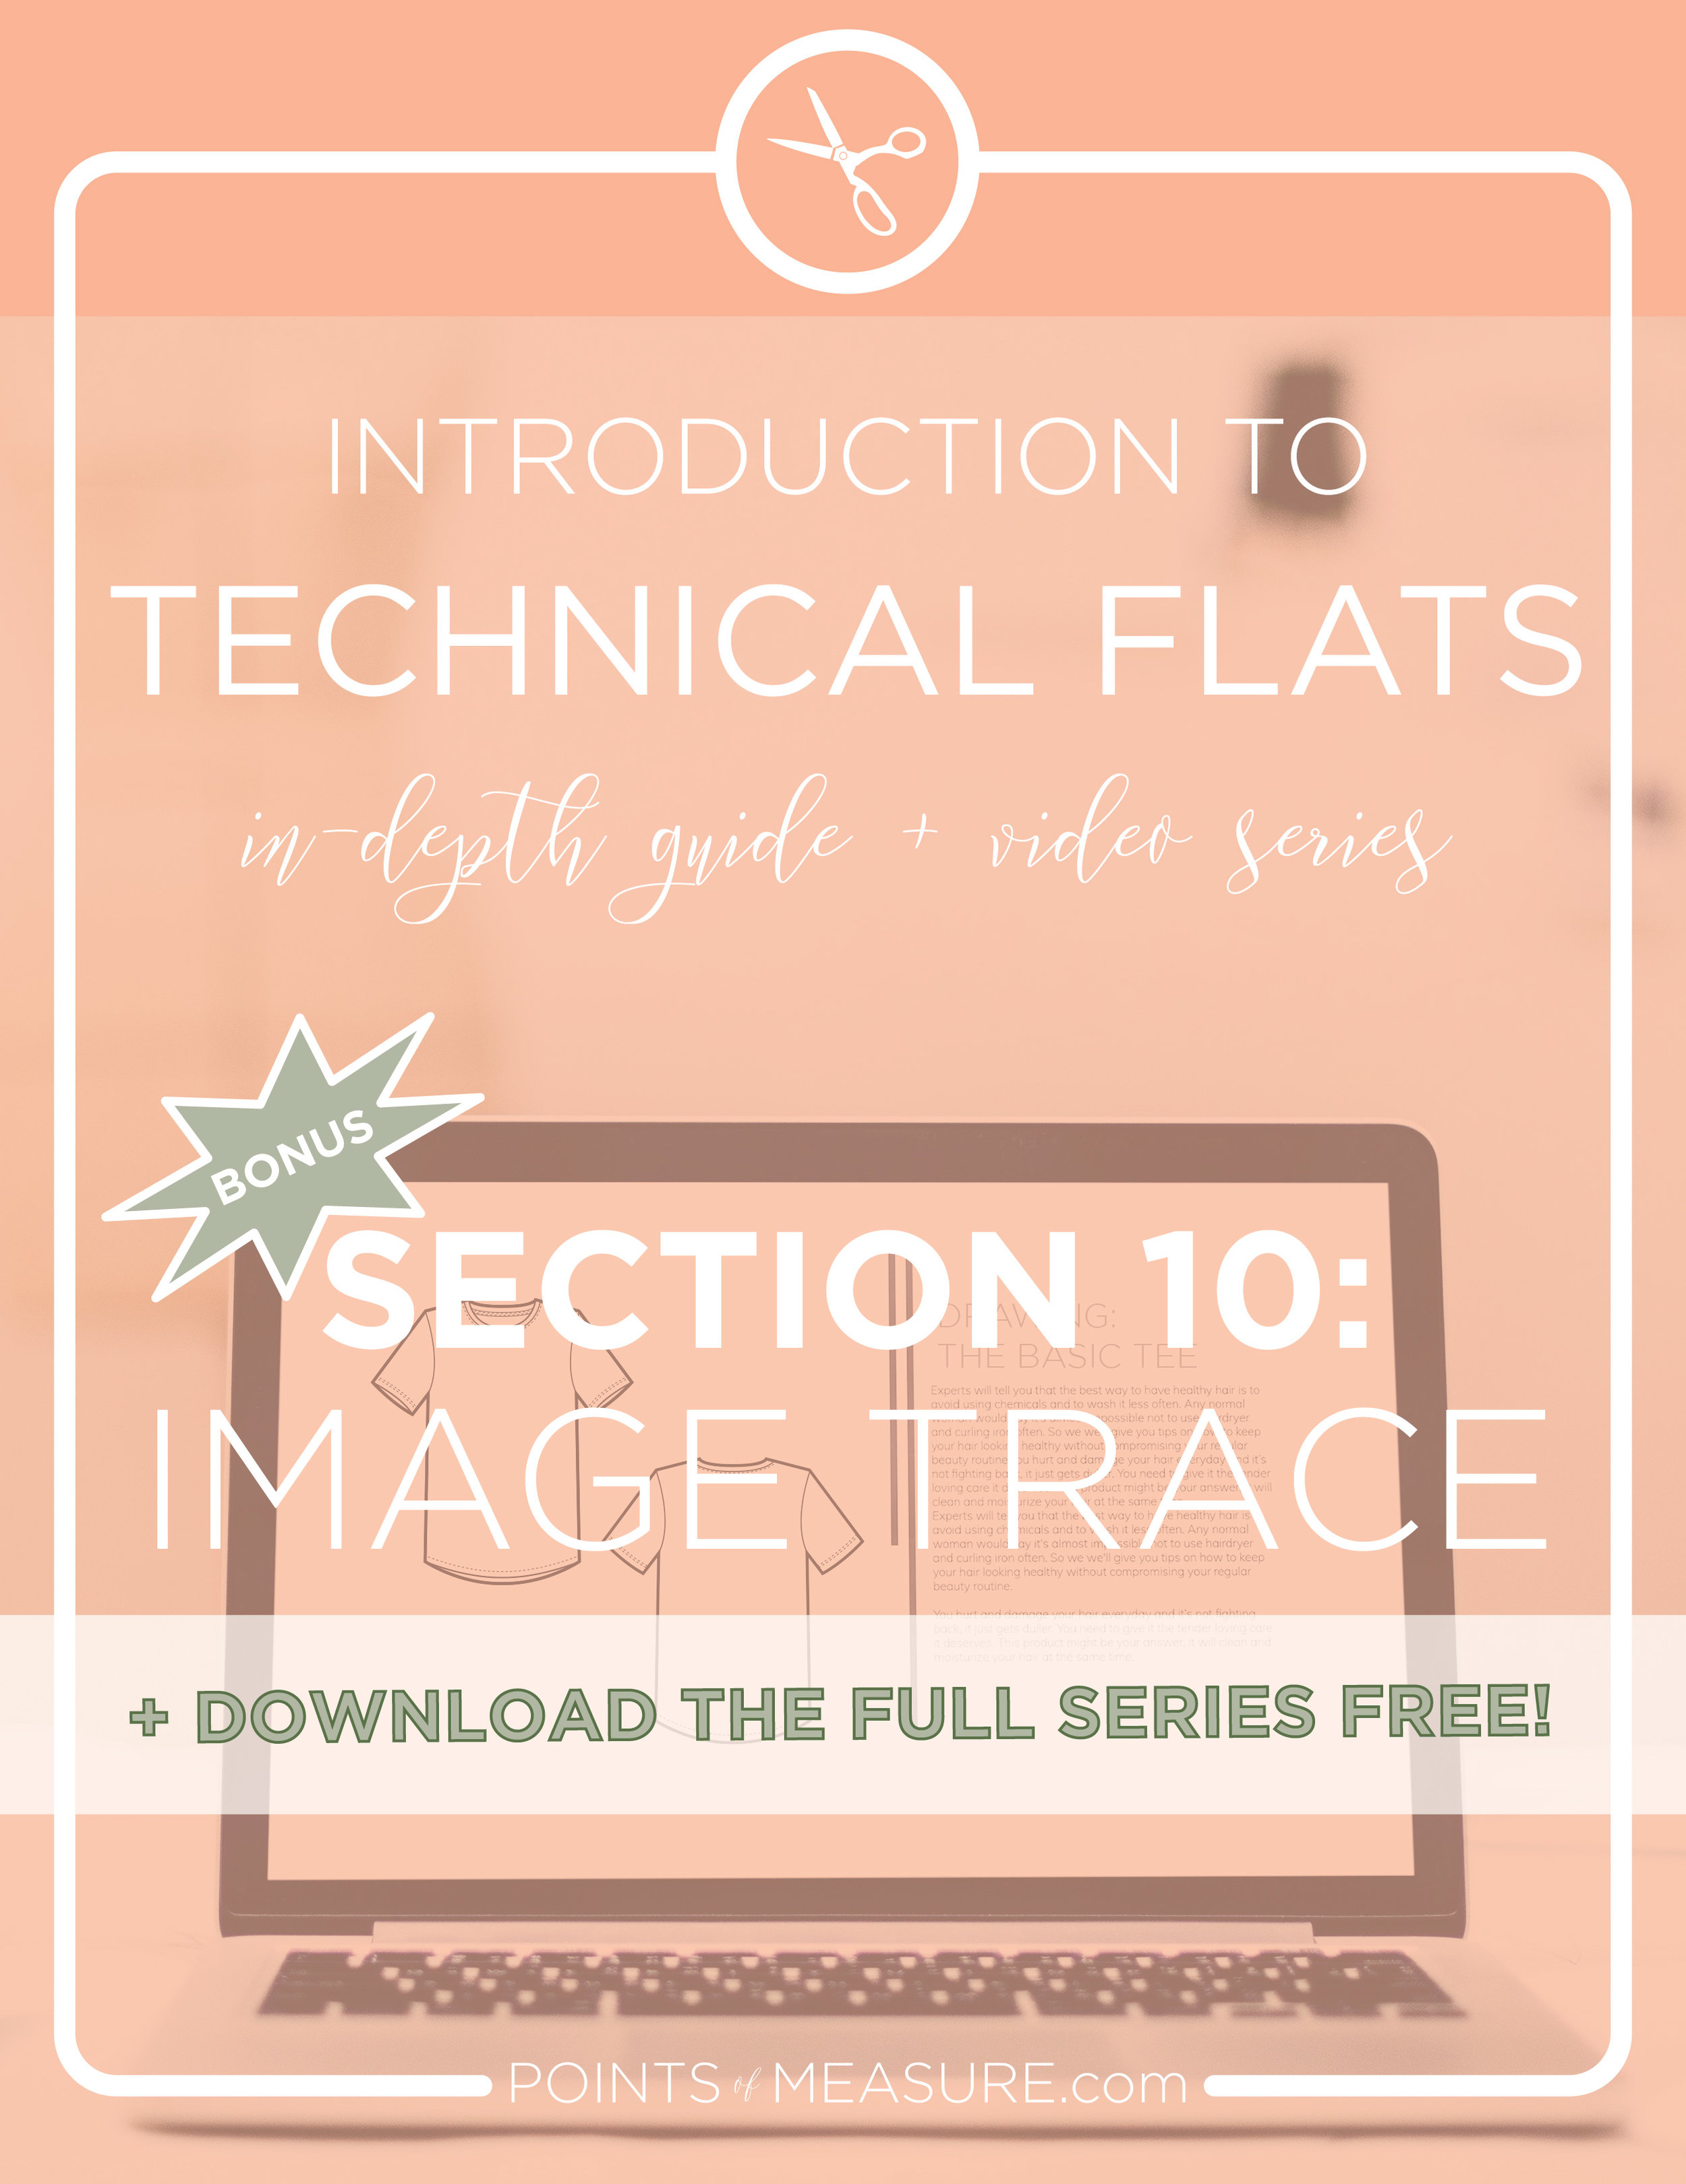 introduction-to-technical-flats-section-10-image-trace-points-of-measure.jpg